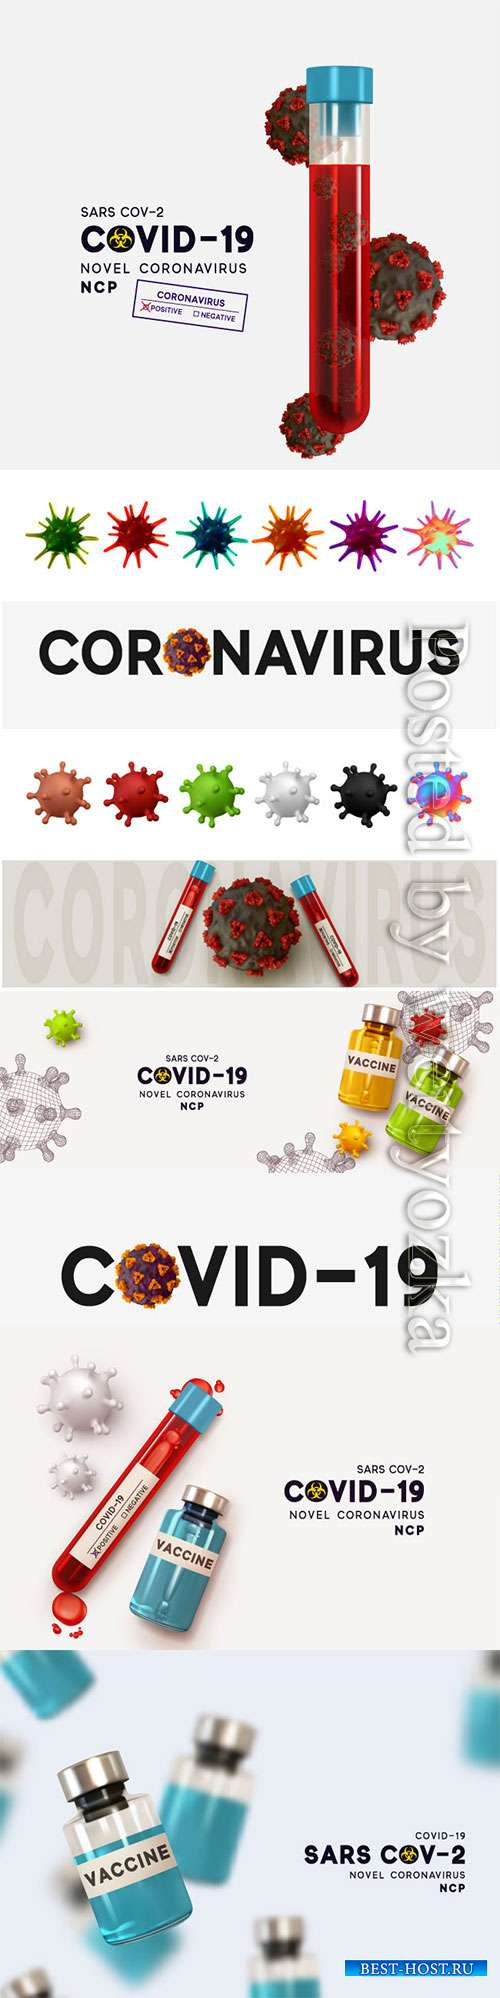 COVID 19, Coranavirus vector illustration sets # 19